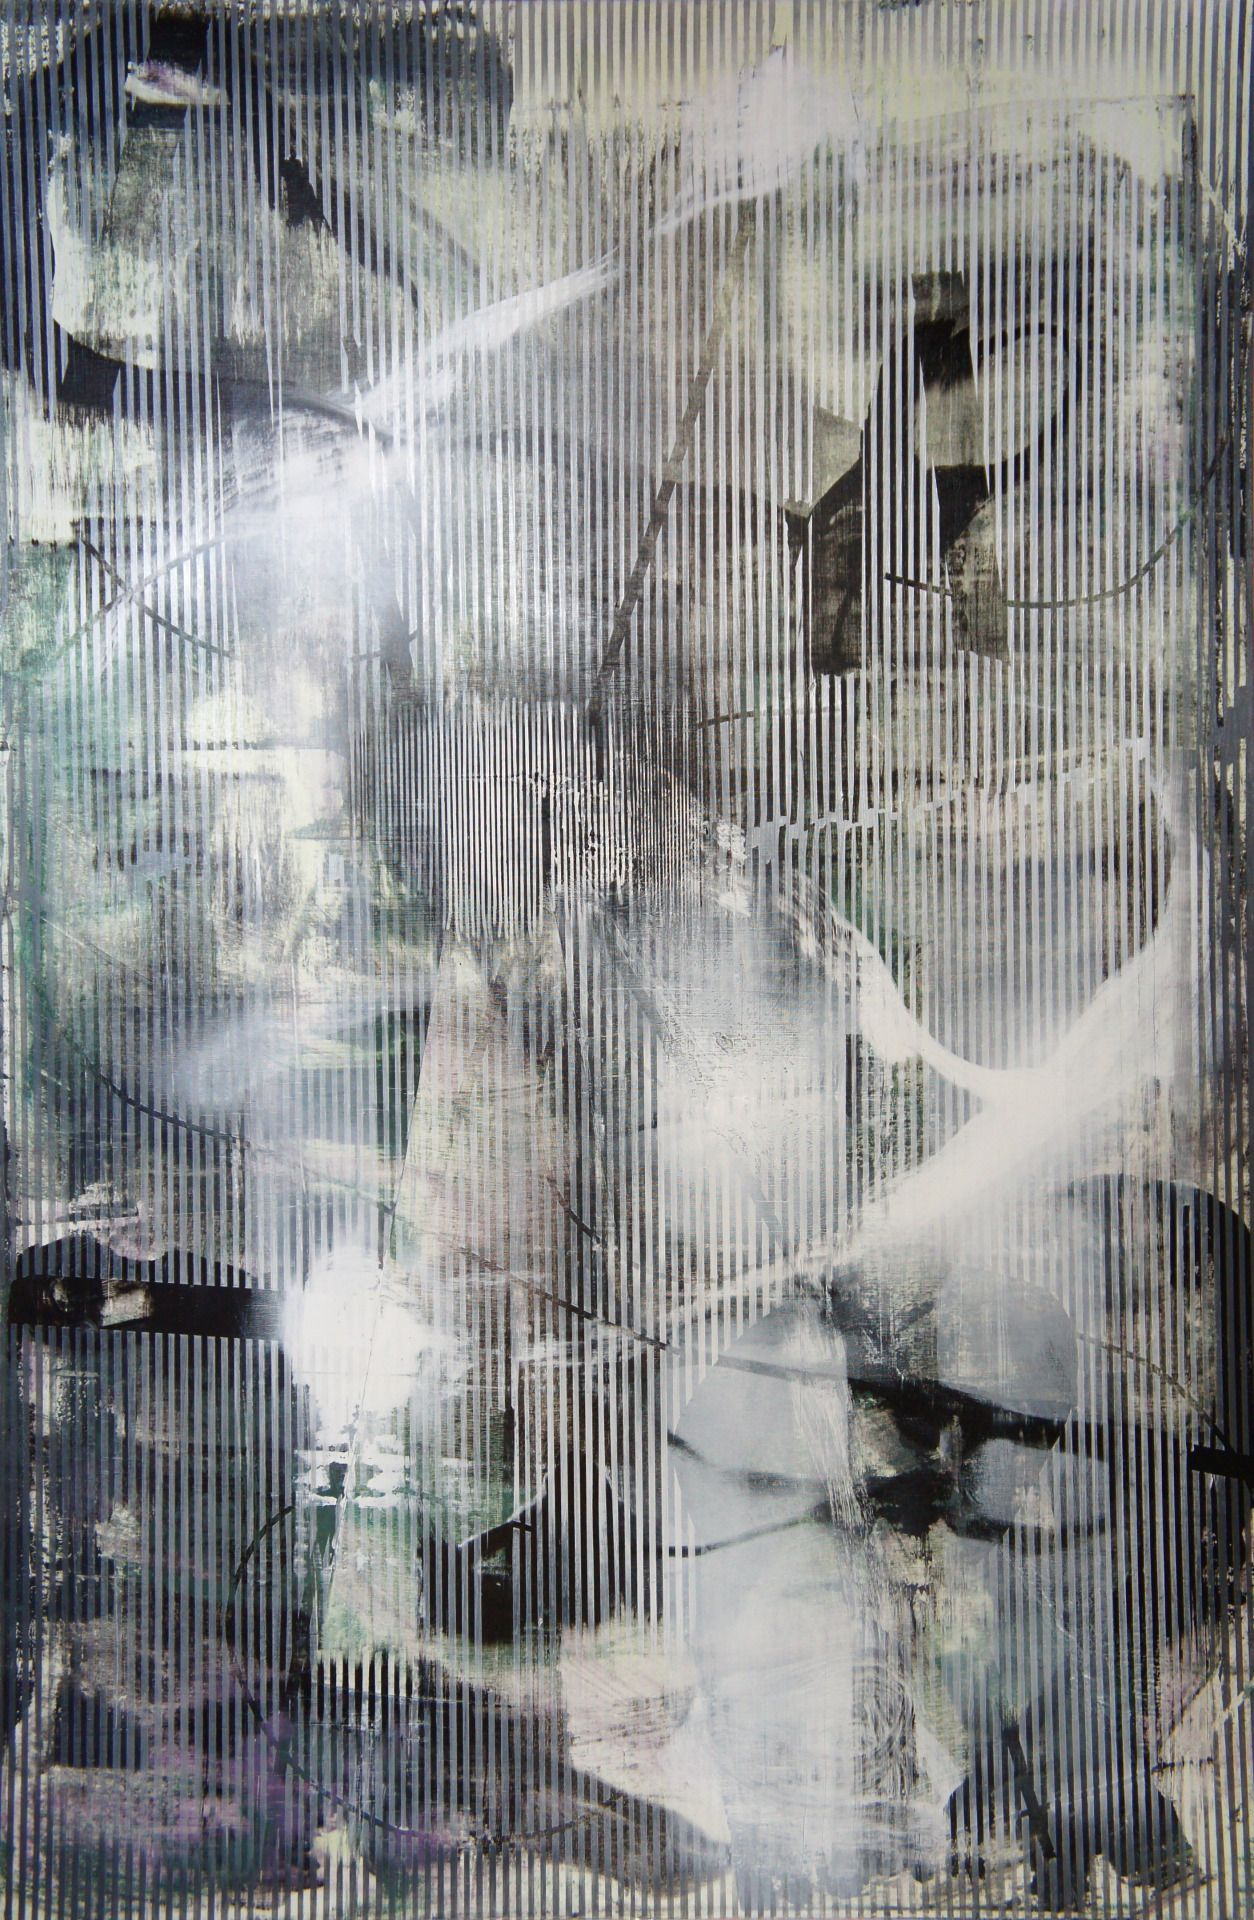 melisataylormetzger:  Melisa Tayor Metzger, The Ghosts Are Obvious Now, 2013